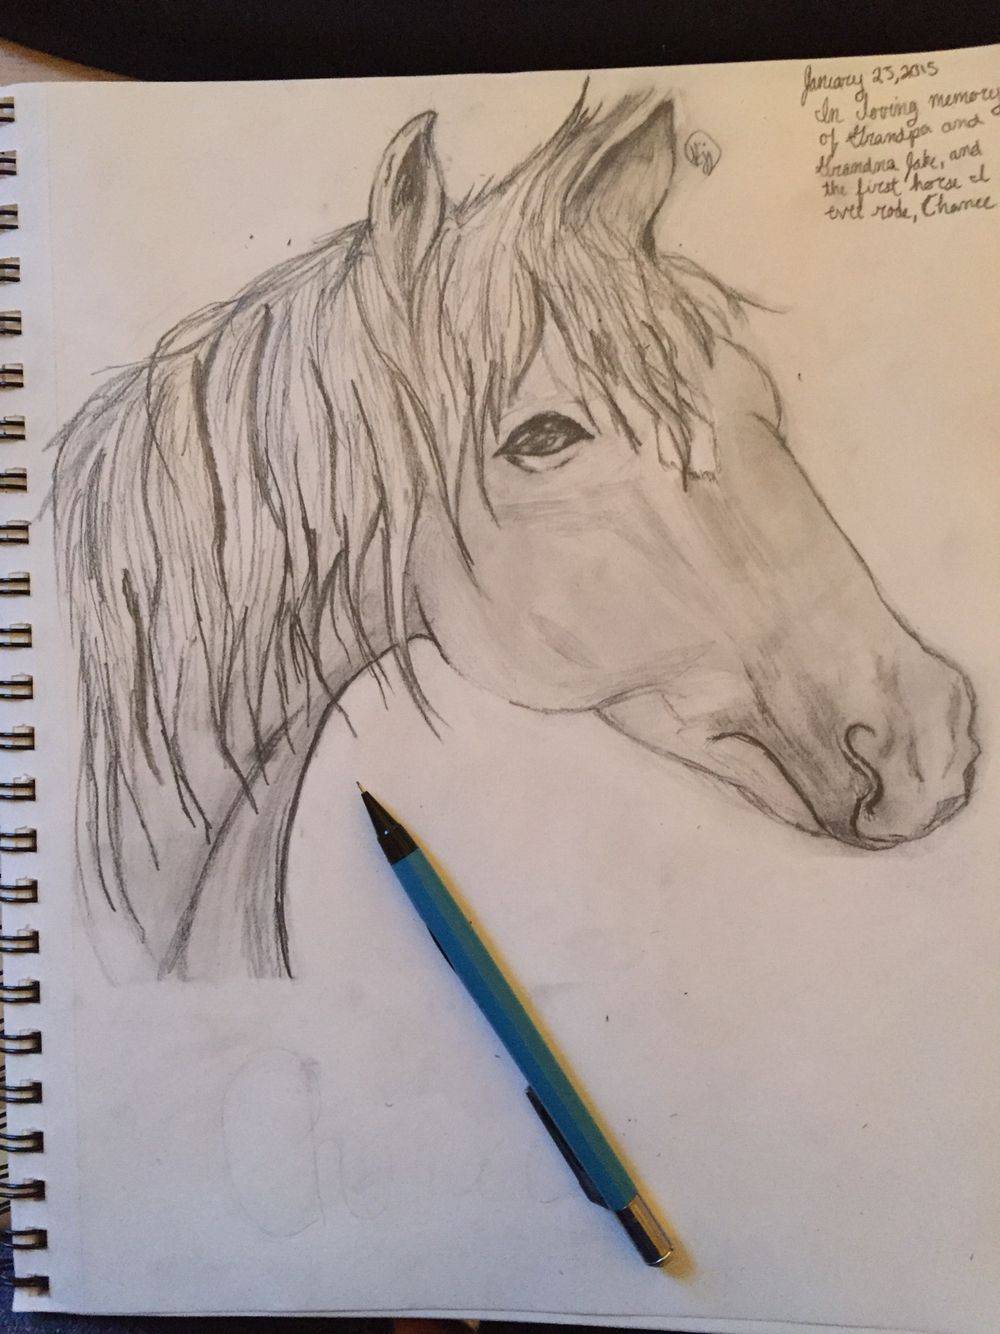 A horse I drew today. Please let me know what you think! :)